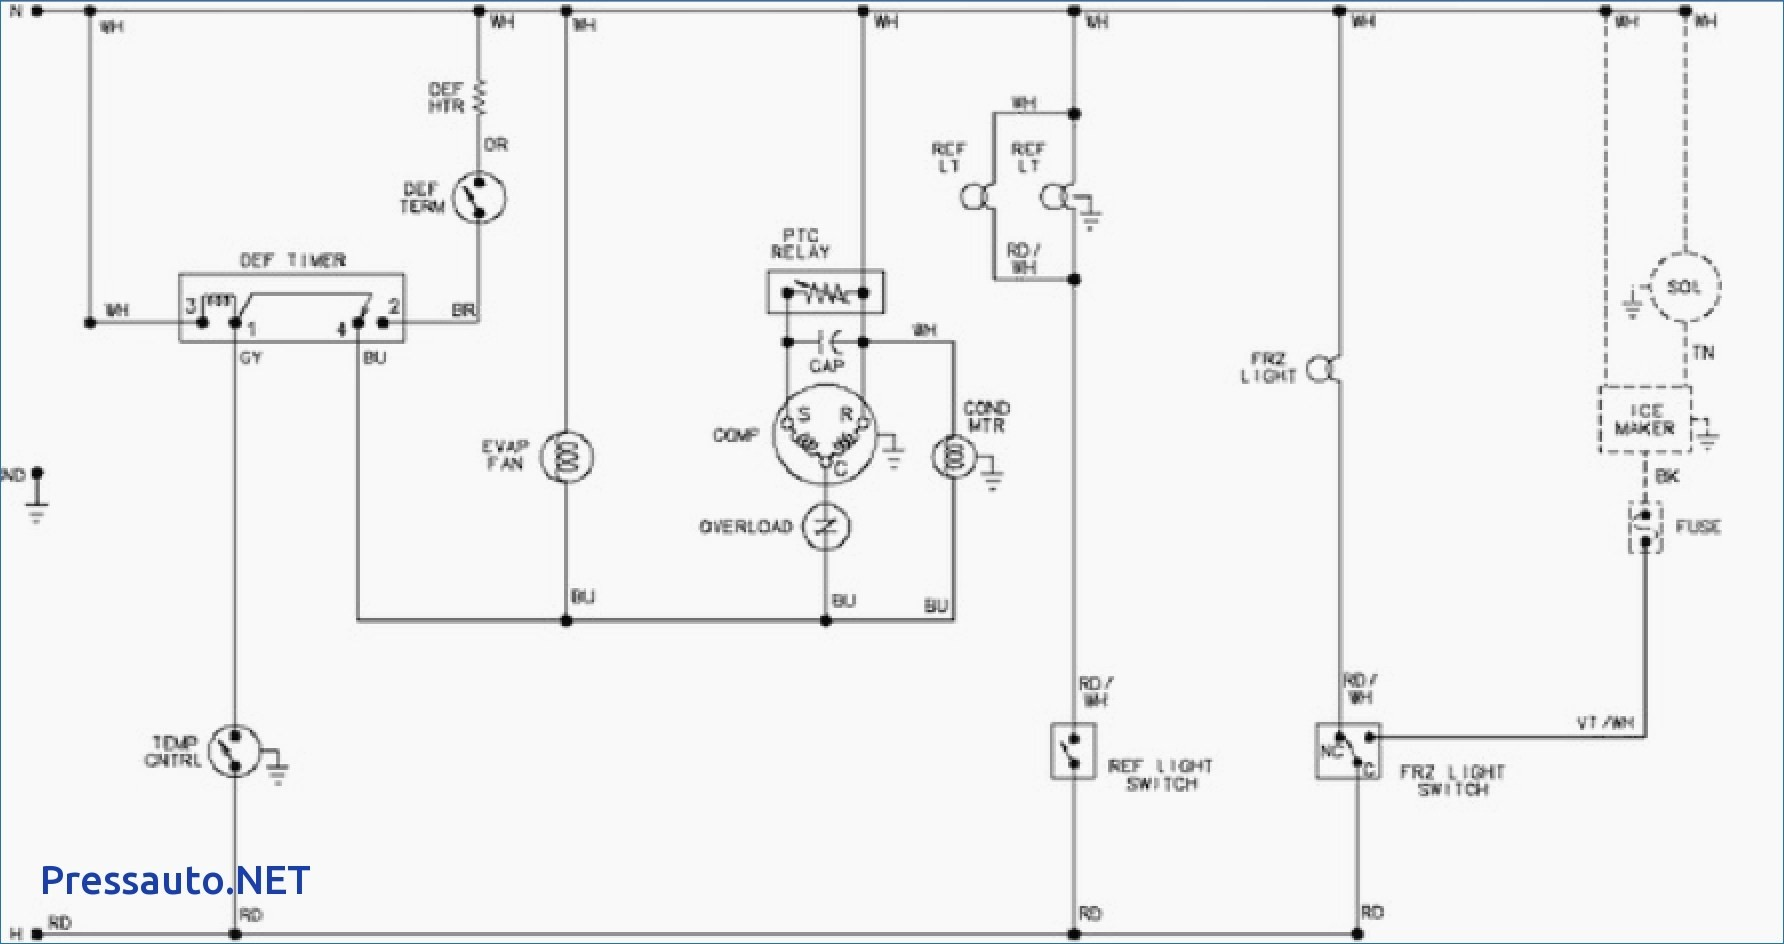 Refrigerator Wiring Diagram Pdf Manual Guide Ice Maker Diagrams Top Image Rh Jaco Wisemamablog Com Whirlpool Defrost Timer